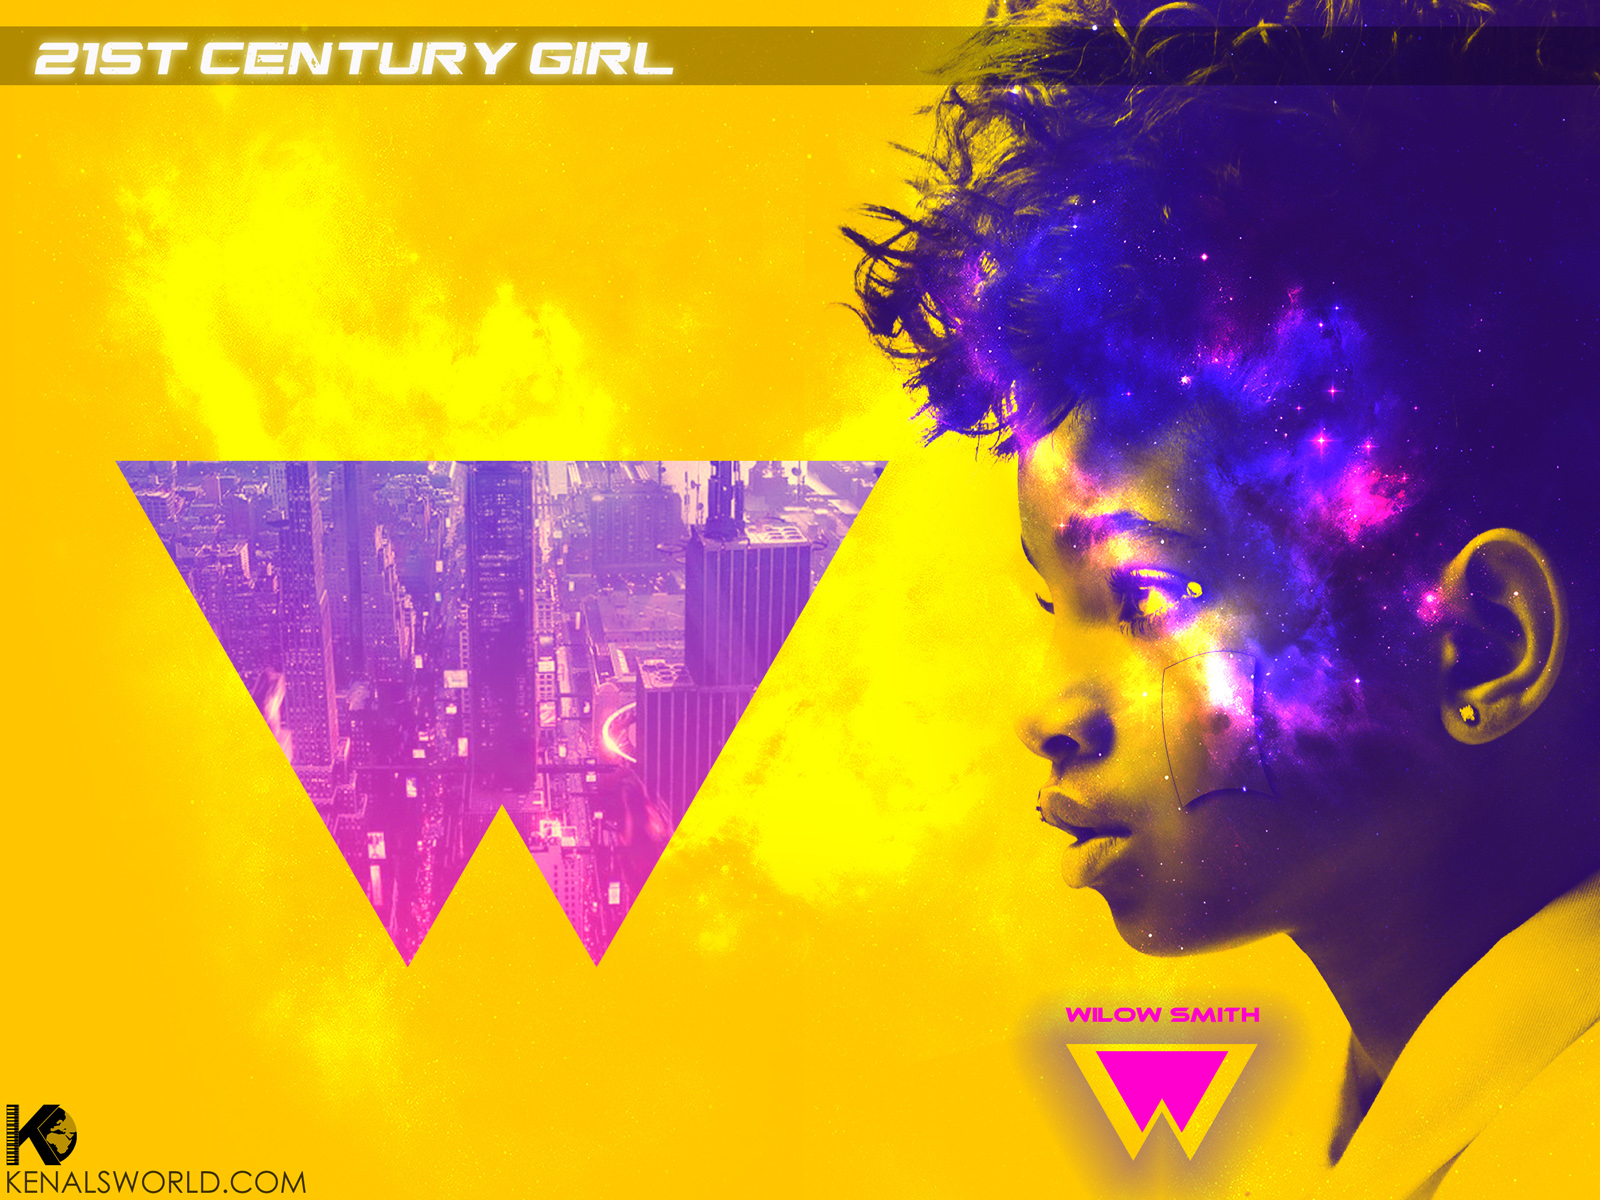 Willow Smith Desktop Background Designs   Kenalsworld Art 1600x1200